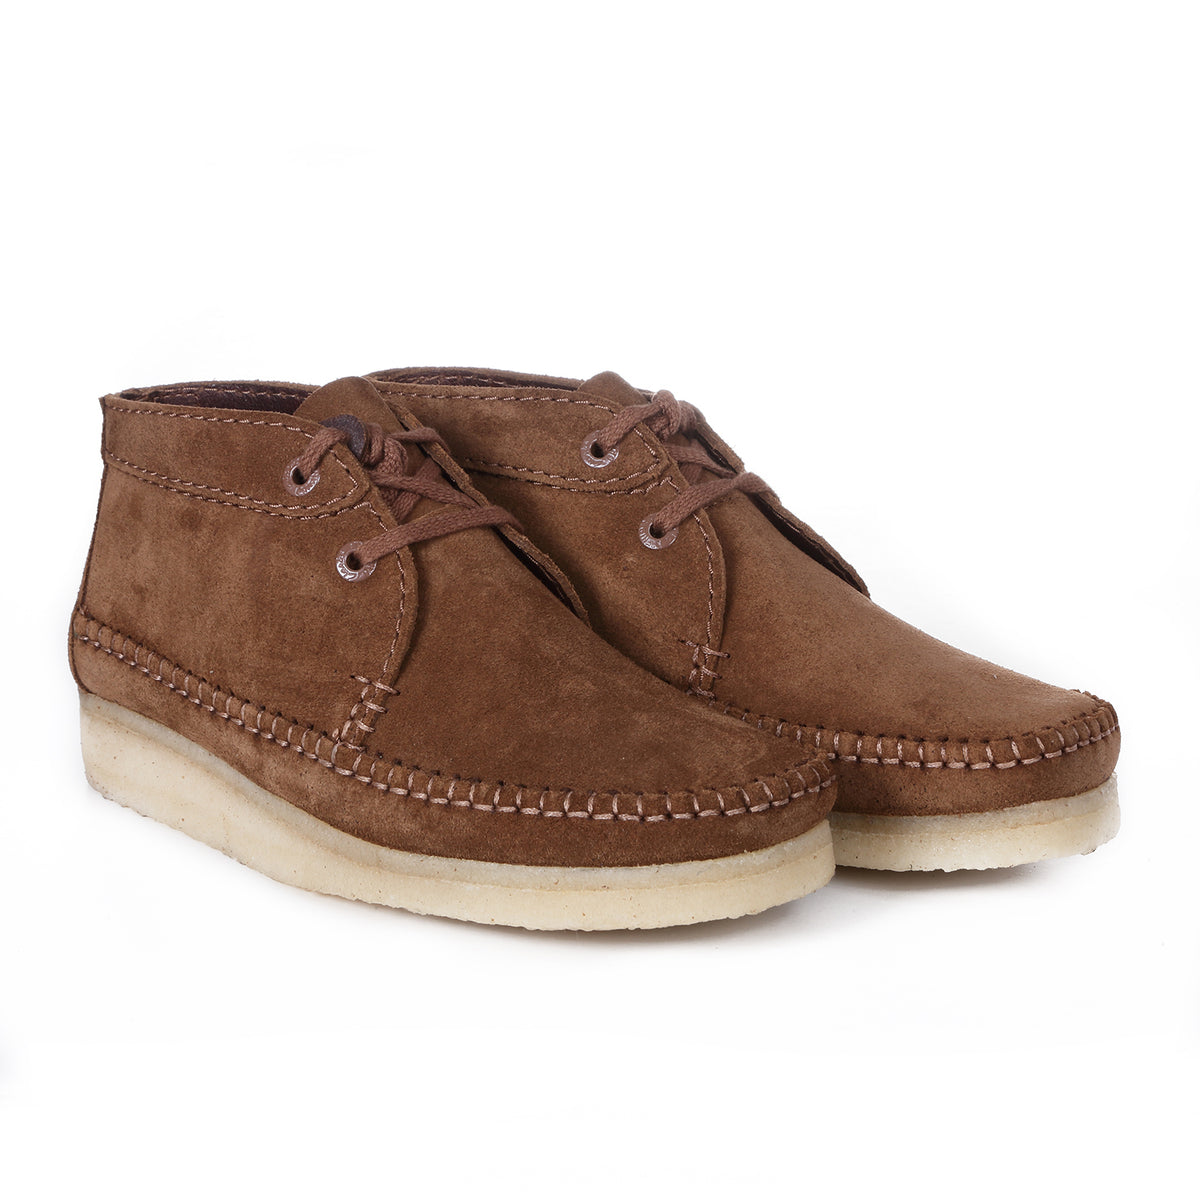 CLARKS ORIGINALS - WEAVER BOOT - COLA SUEDE